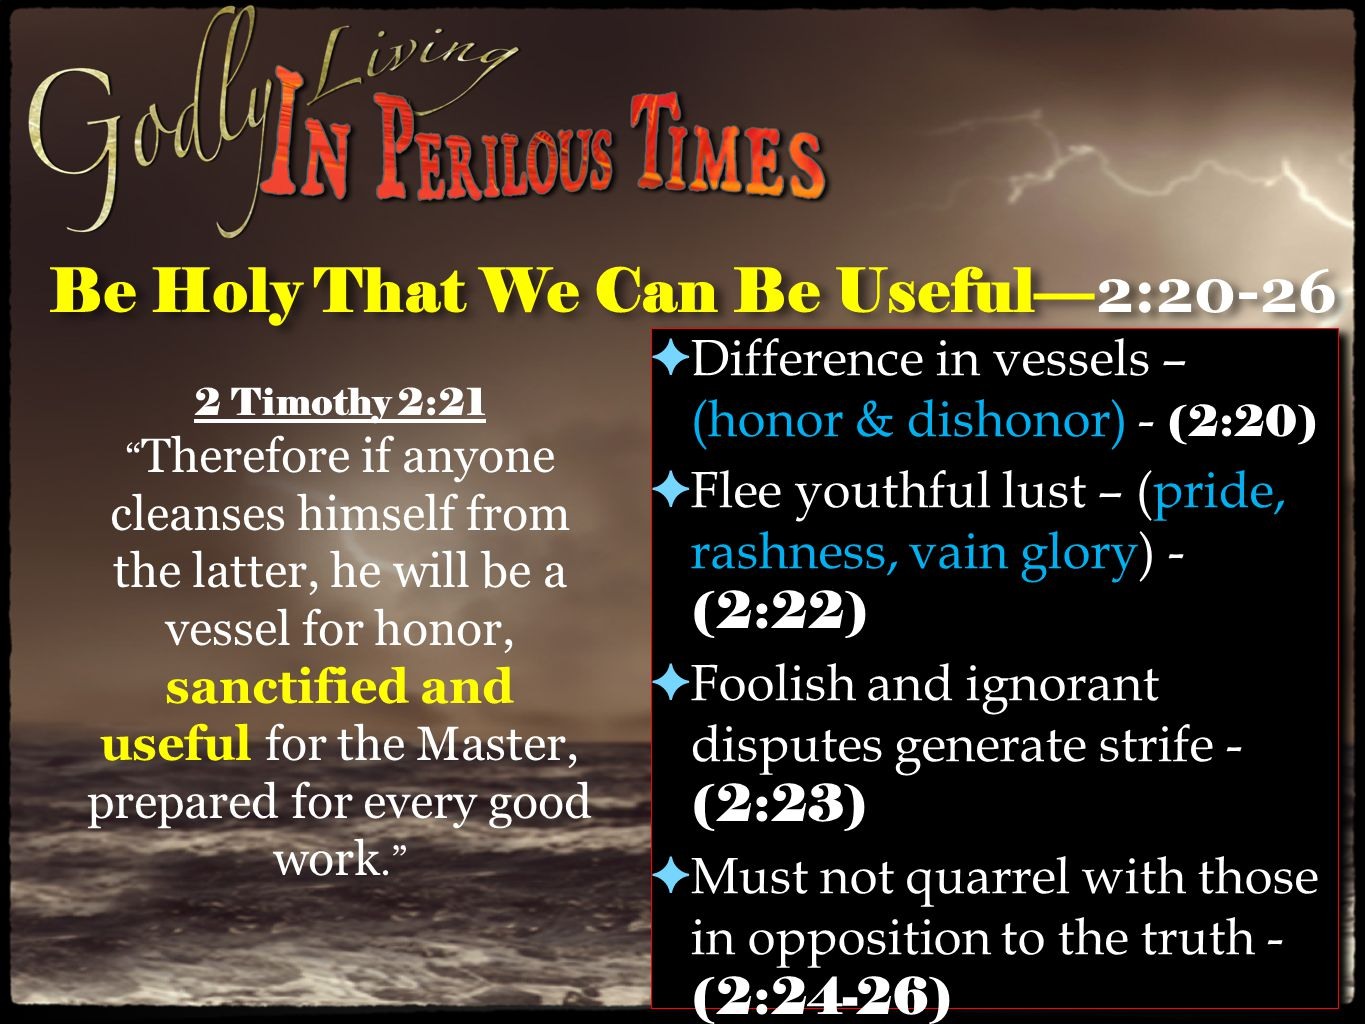 Be Holy That We Can Be Useful— 2:20-26 ✦ Difference in vessels – (honor & dishonor) - (2:20) ✦ Flee youthful lust – (pride, rashness, vain glory) - (2:22) ✦ Foolish and ignorant disputes generate strife - (2:23) ✦ Must not quarrel with those in opposition to the truth - (2:24-26) ✦ Difference in vessels – (honor & dishonor) - (2:20) ✦ Flee youthful lust – (pride, rashness, vain glory) - (2:22) ✦ Foolish and ignorant disputes generate strife - (2:23) ✦ Must not quarrel with those in opposition to the truth - (2:24-26) 2 Timothy 2:21 Therefore if anyone cleanses himself from the latter, he will be a vessel for honor, sanctified and useful for the Master, prepared for every good work.